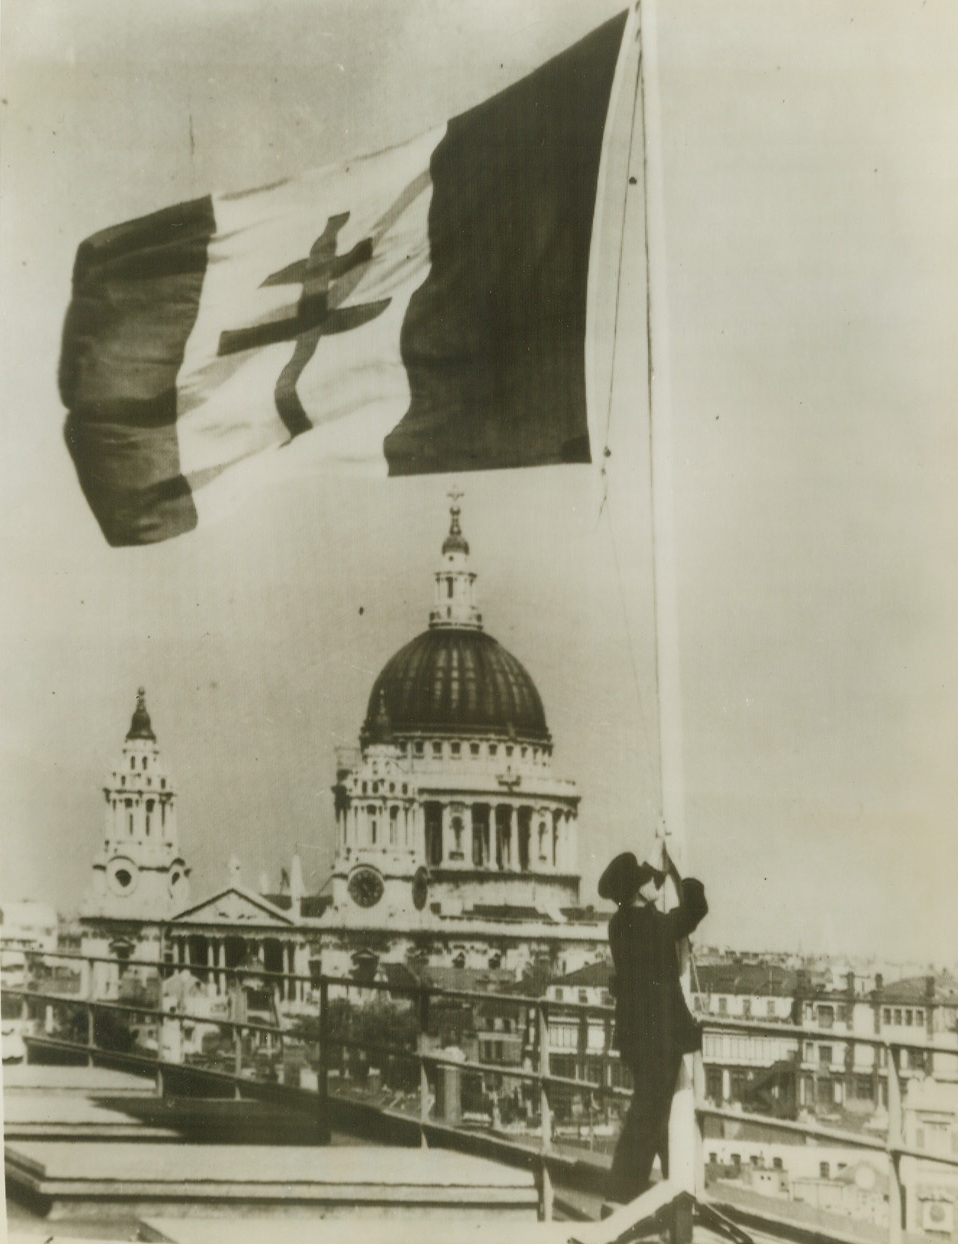 Marking Liberation of Paris, 8/23/1944. London – By way of celebration of the Liberation of Paris, Londoners hoisted a flag bearing the Cross of Lorraine to wave over the British capital. In the background is St. Paul's Cathedral. Credit: ACME Radiophoto;